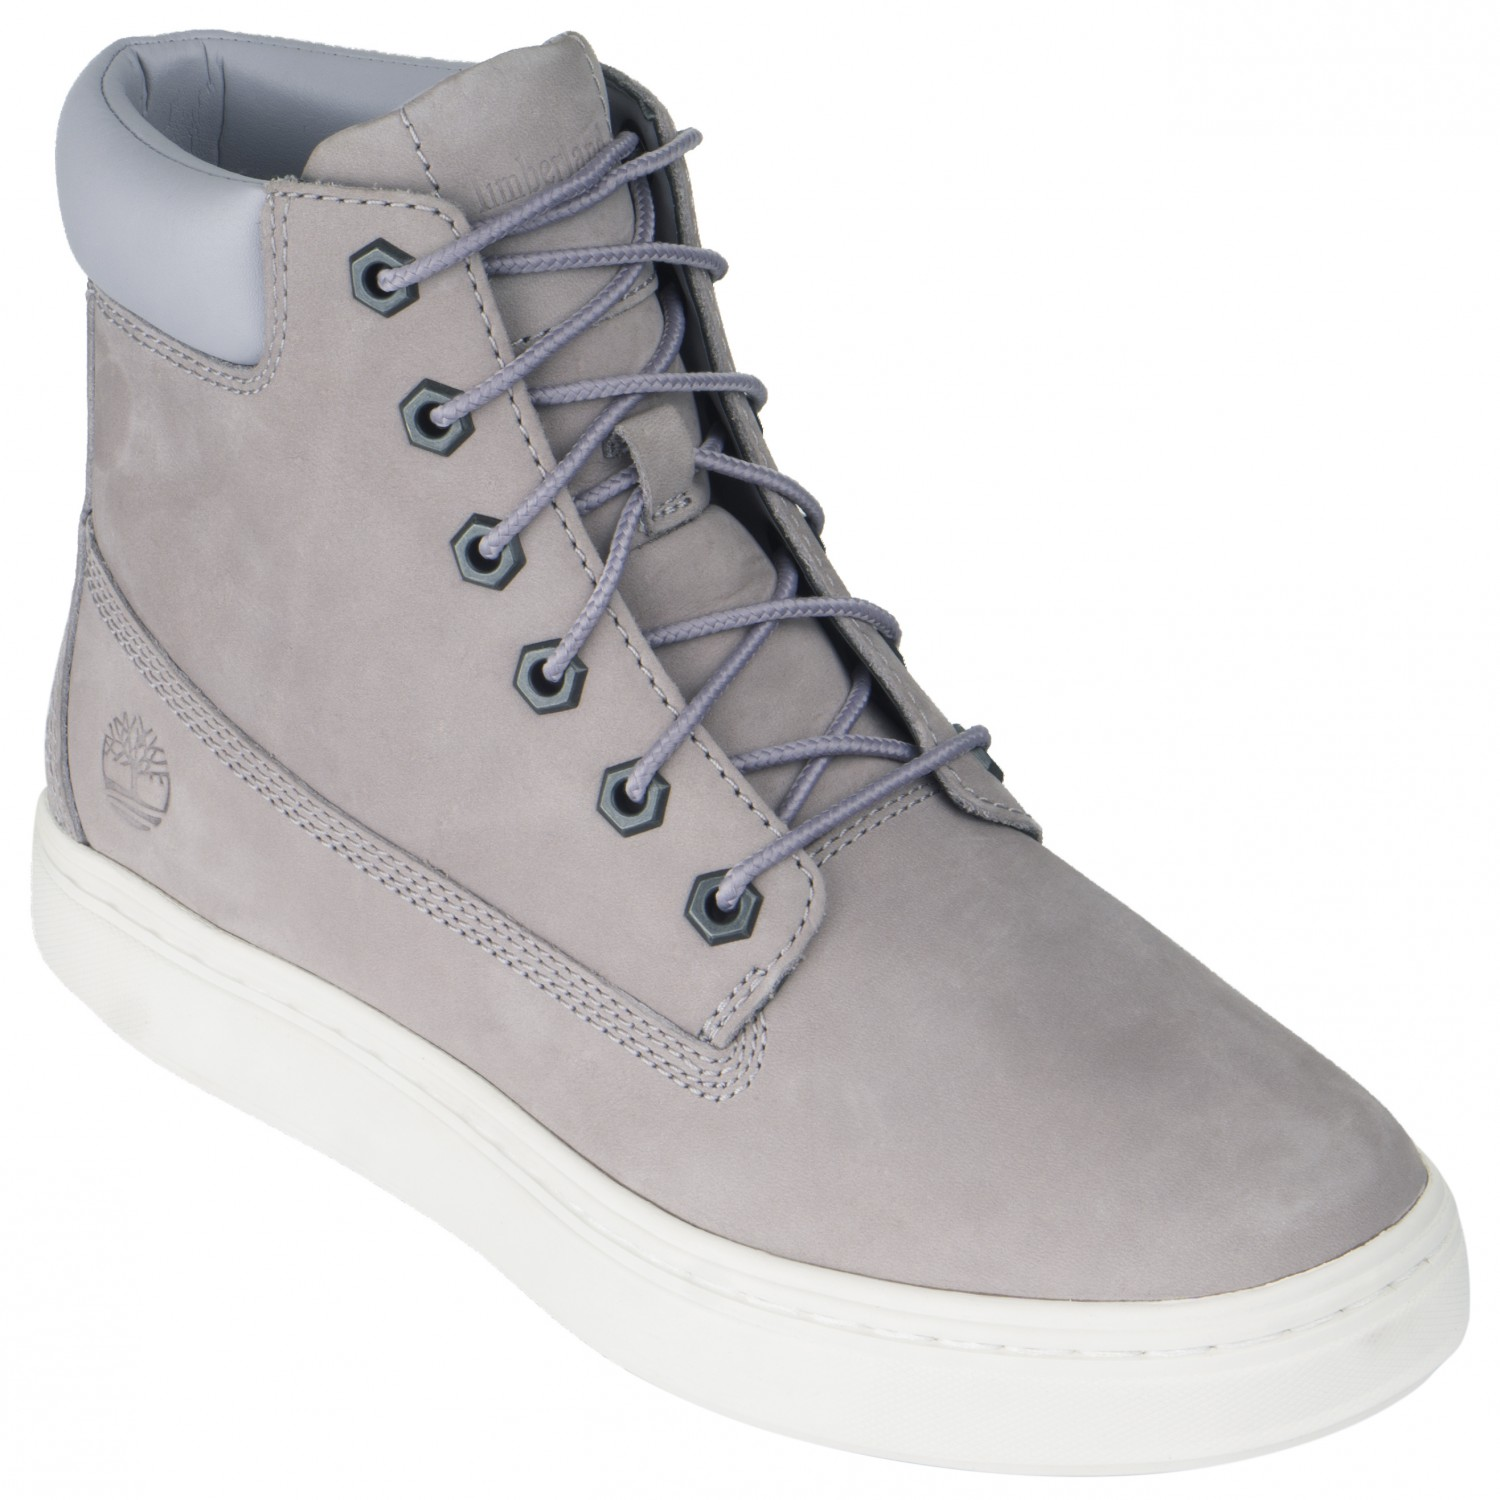 bdfc1a523fa0 Timberland Londyn 6 Inch - Sneakers Women s